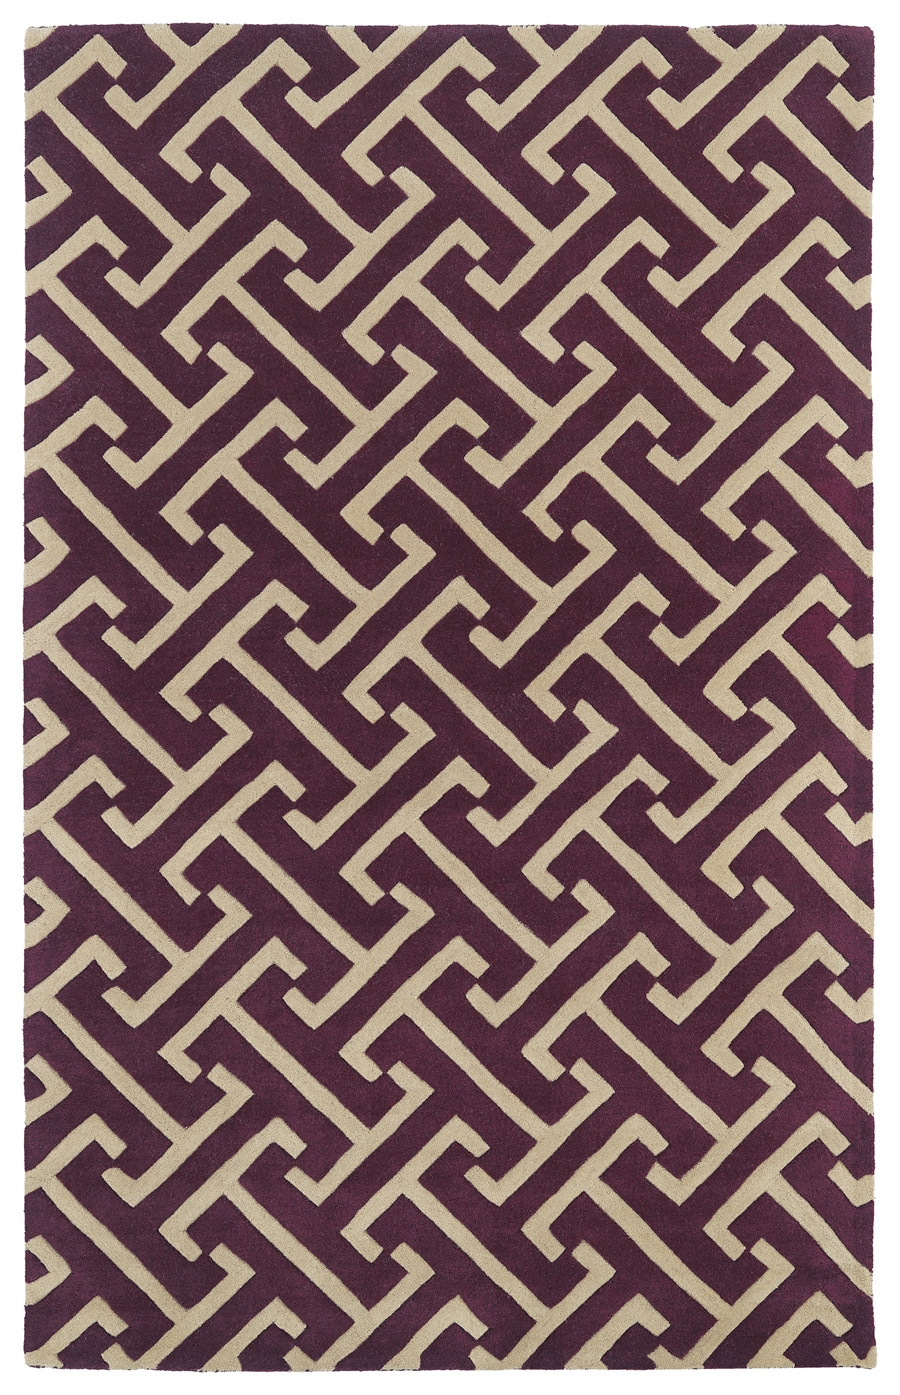 Kaleen Revolution REV04 87 Plum Rug